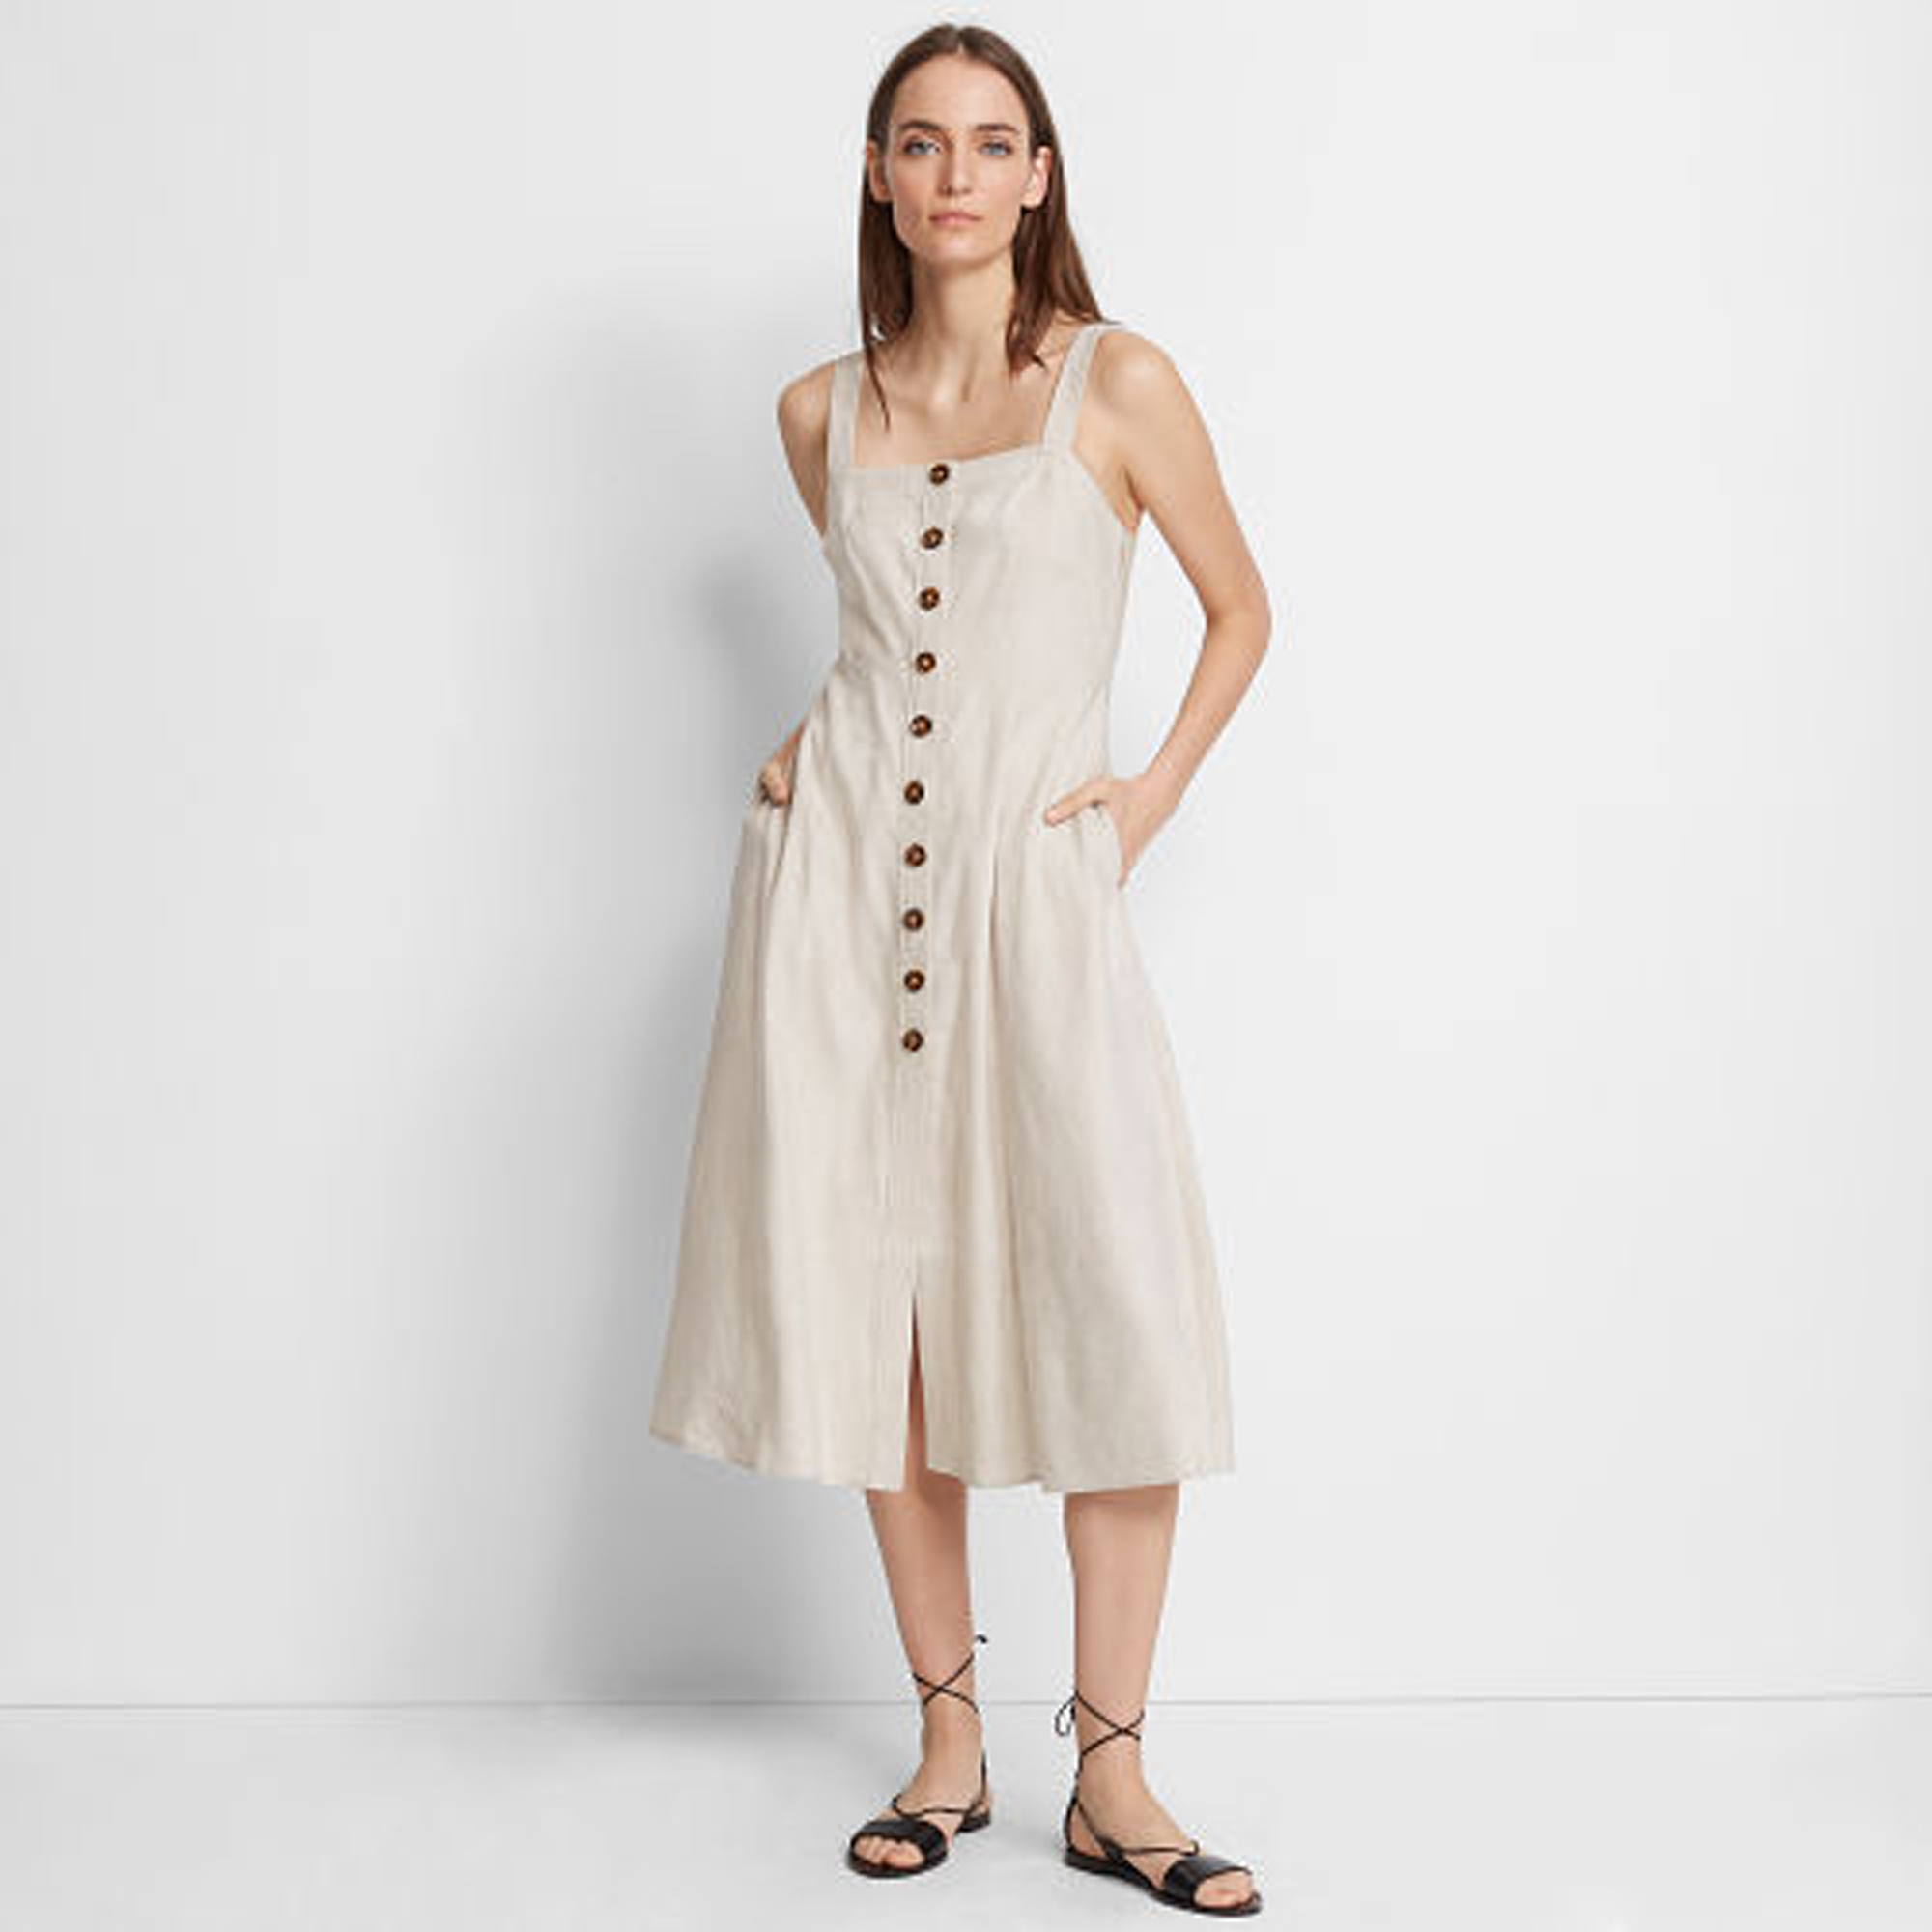 Piqua Linen Dress   HK$2,290